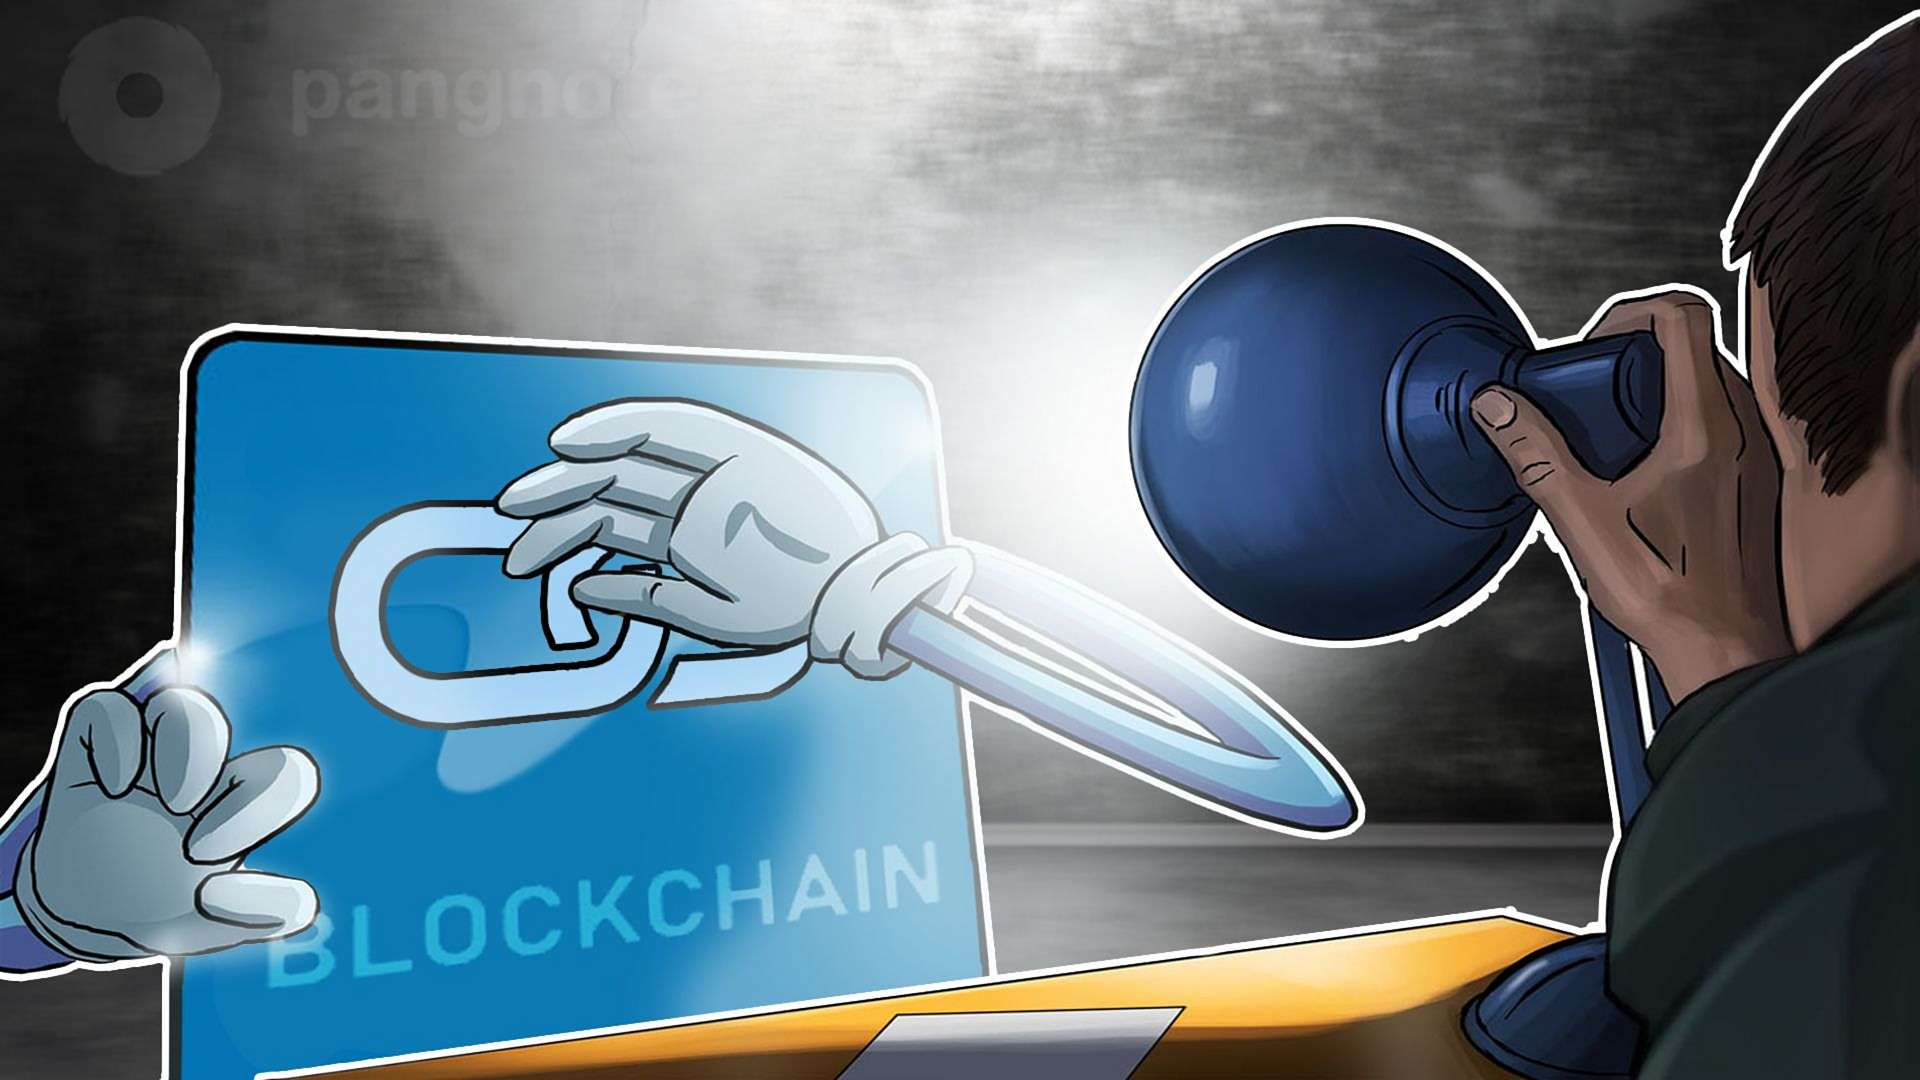 What problems does blockchain pose to companies